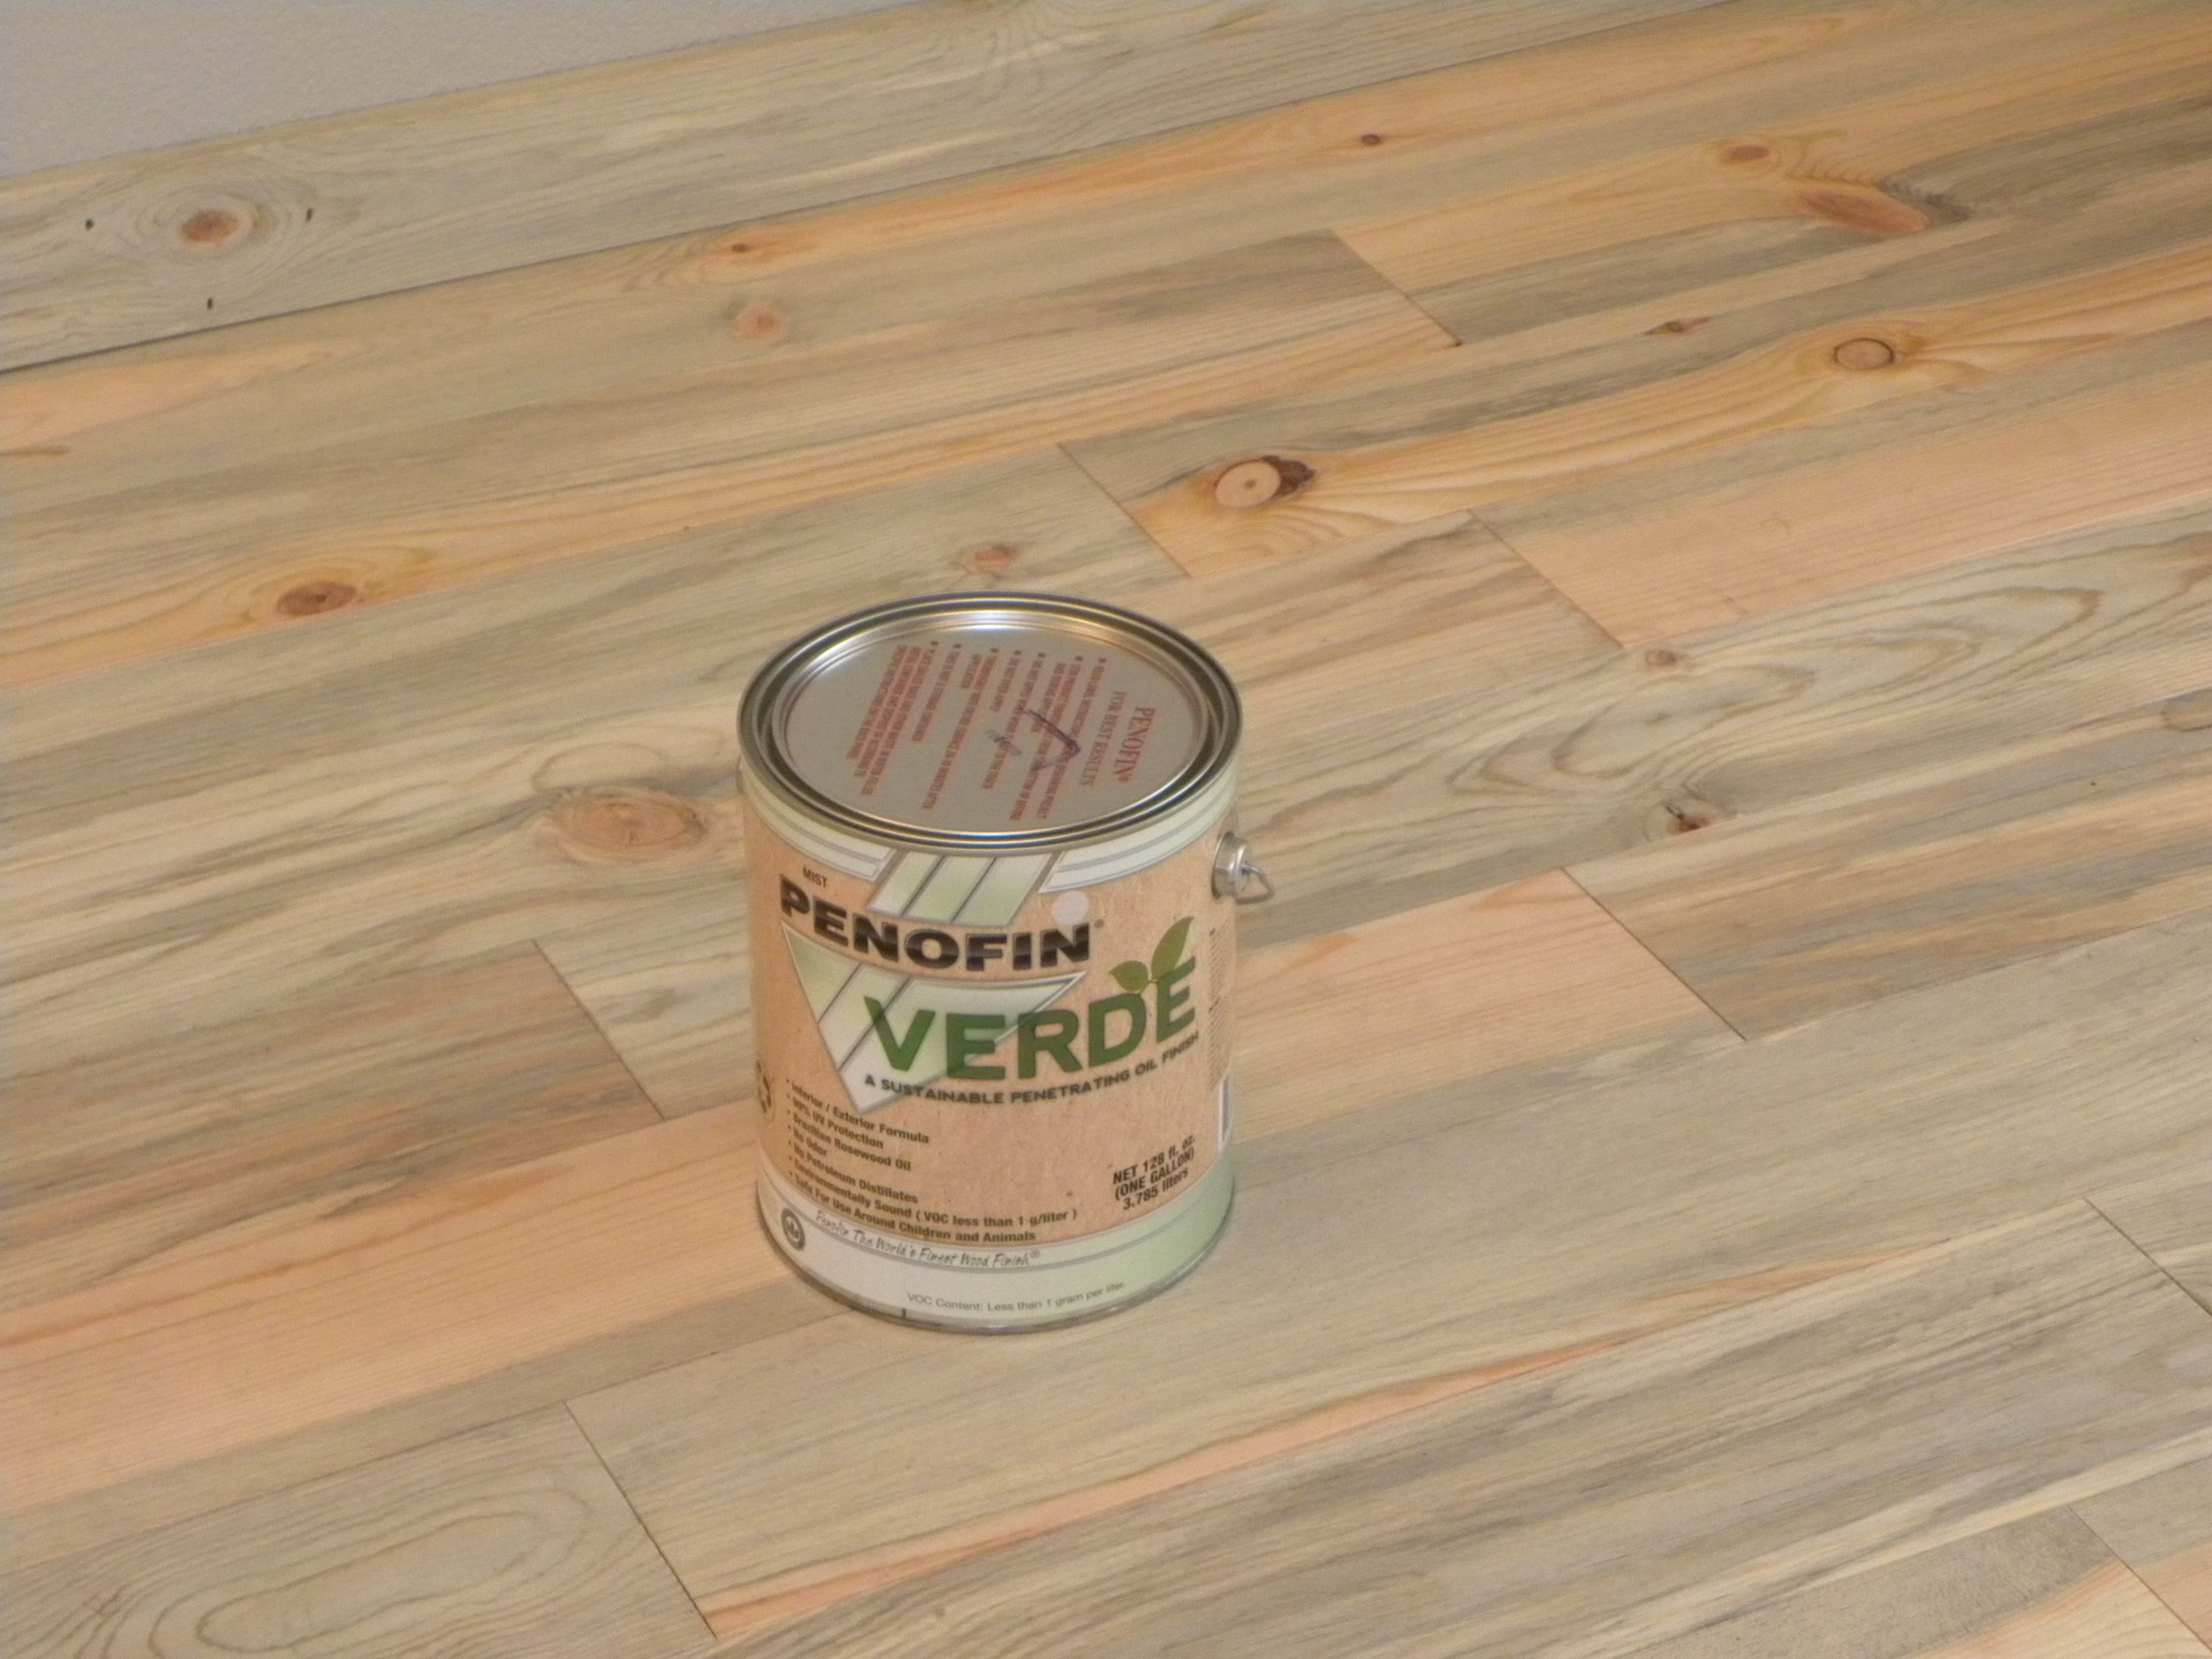 tg engineered hardwood flooring of the new penofin verde whitewash mist is the perfect answer for throughout the new penofin verde whitewash mist is the perfect answer for beetle kill pine the verde mist does not darken the grey tones or yellow the white tones